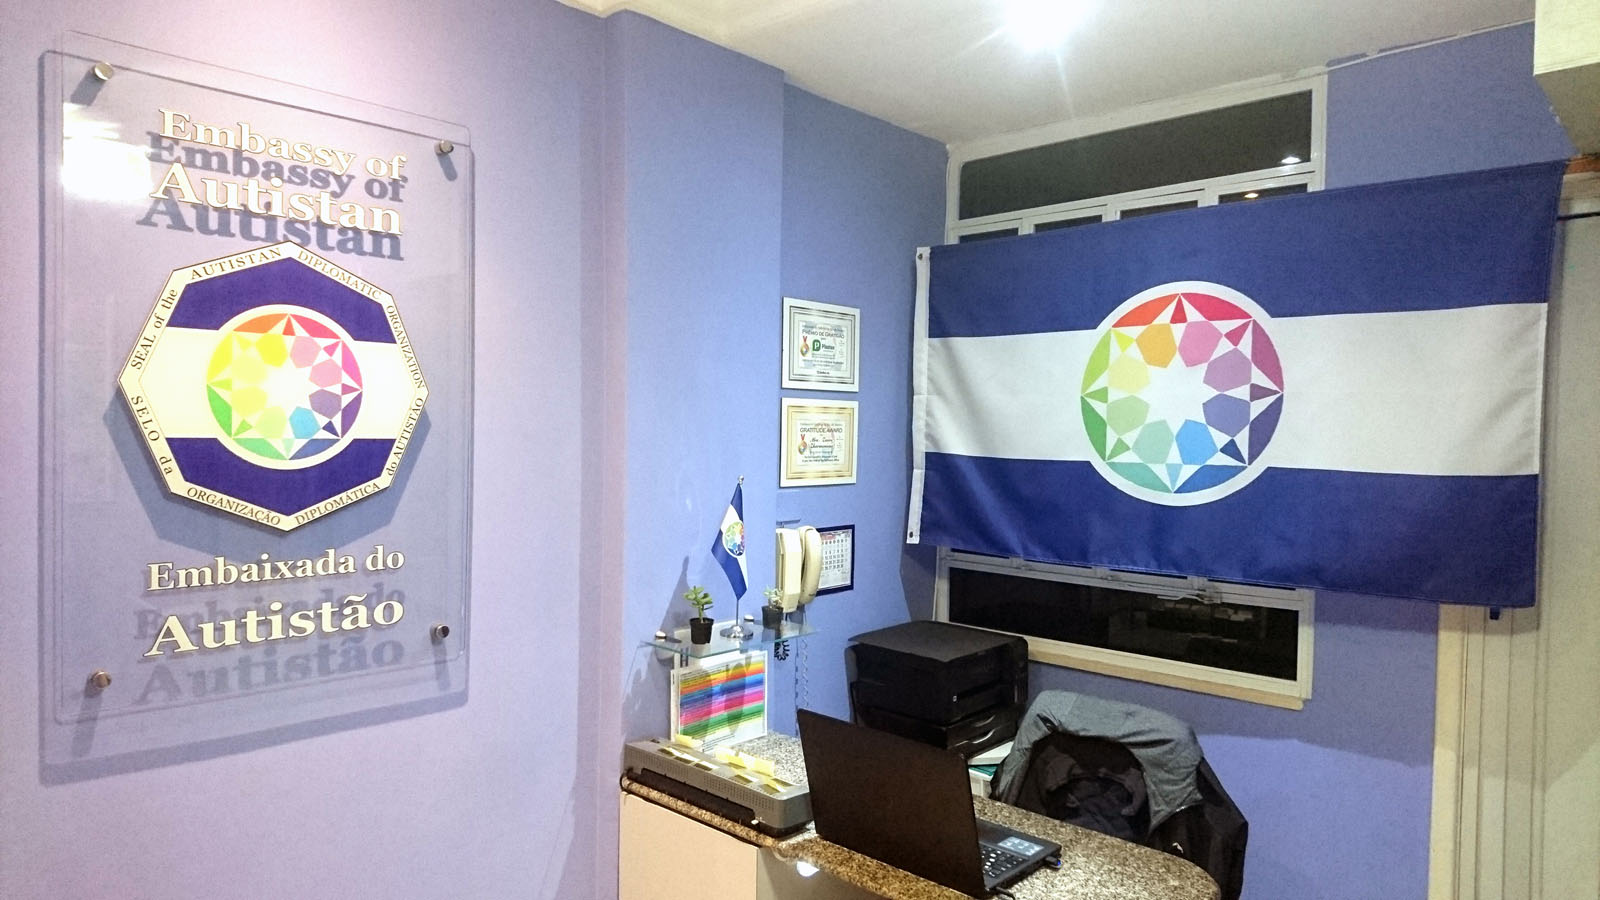 The office of the Embassy of Autistan in Rio de Janeiro (with the plaque and the Flag)